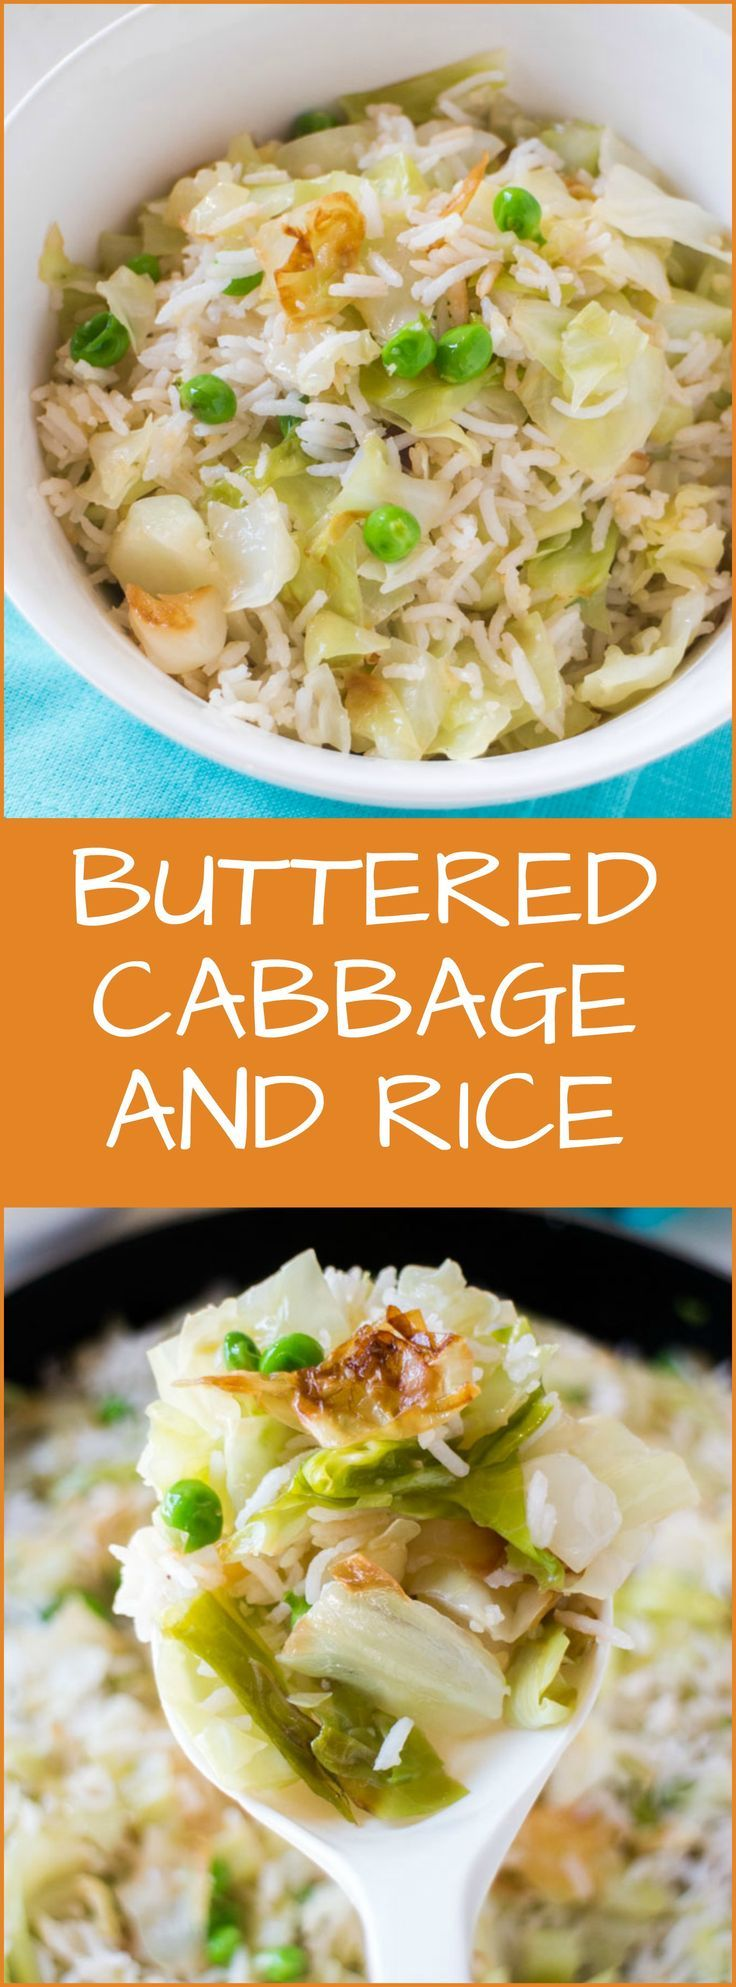 Buttered Cabbage and Rice is a comfort food recipe that only takes 20 minutes from start to finish! It's a great back to school dinner recipe!